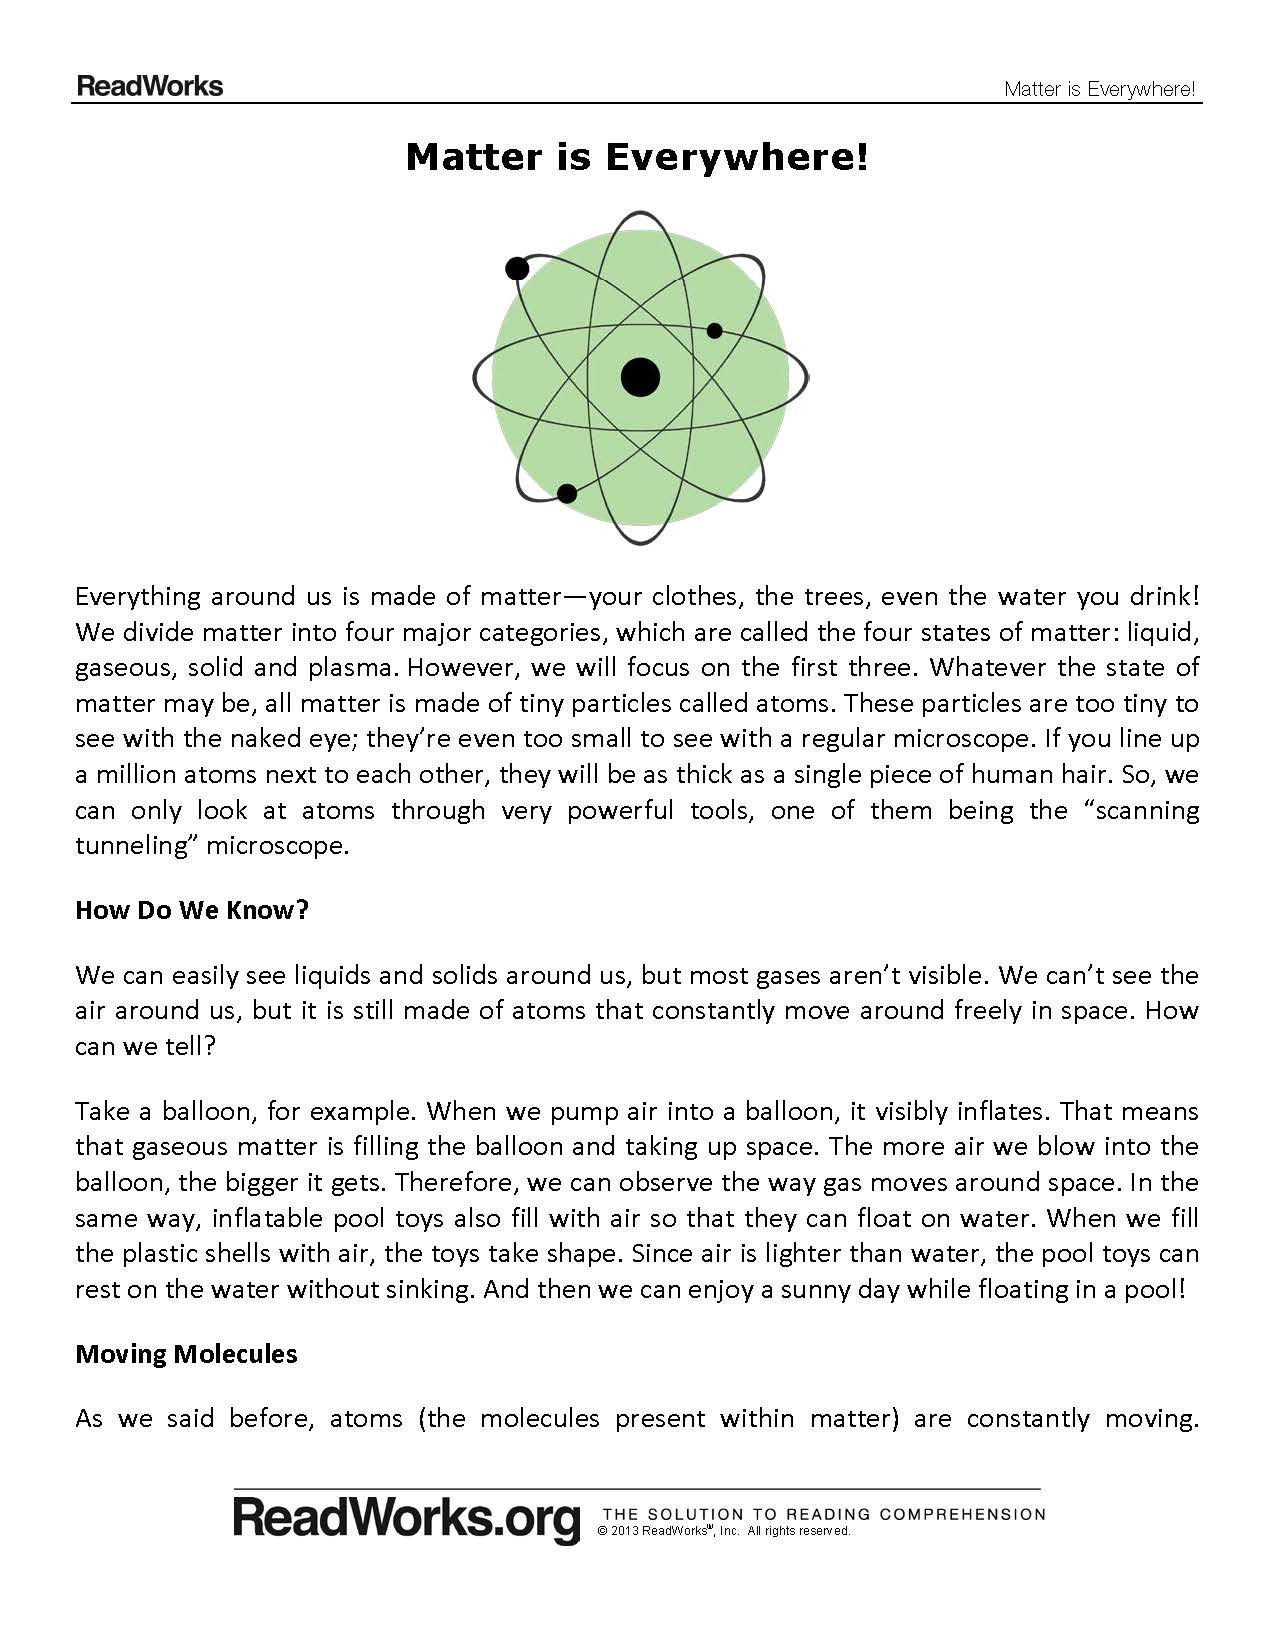 Free Science Reading Comprehension Worksheets